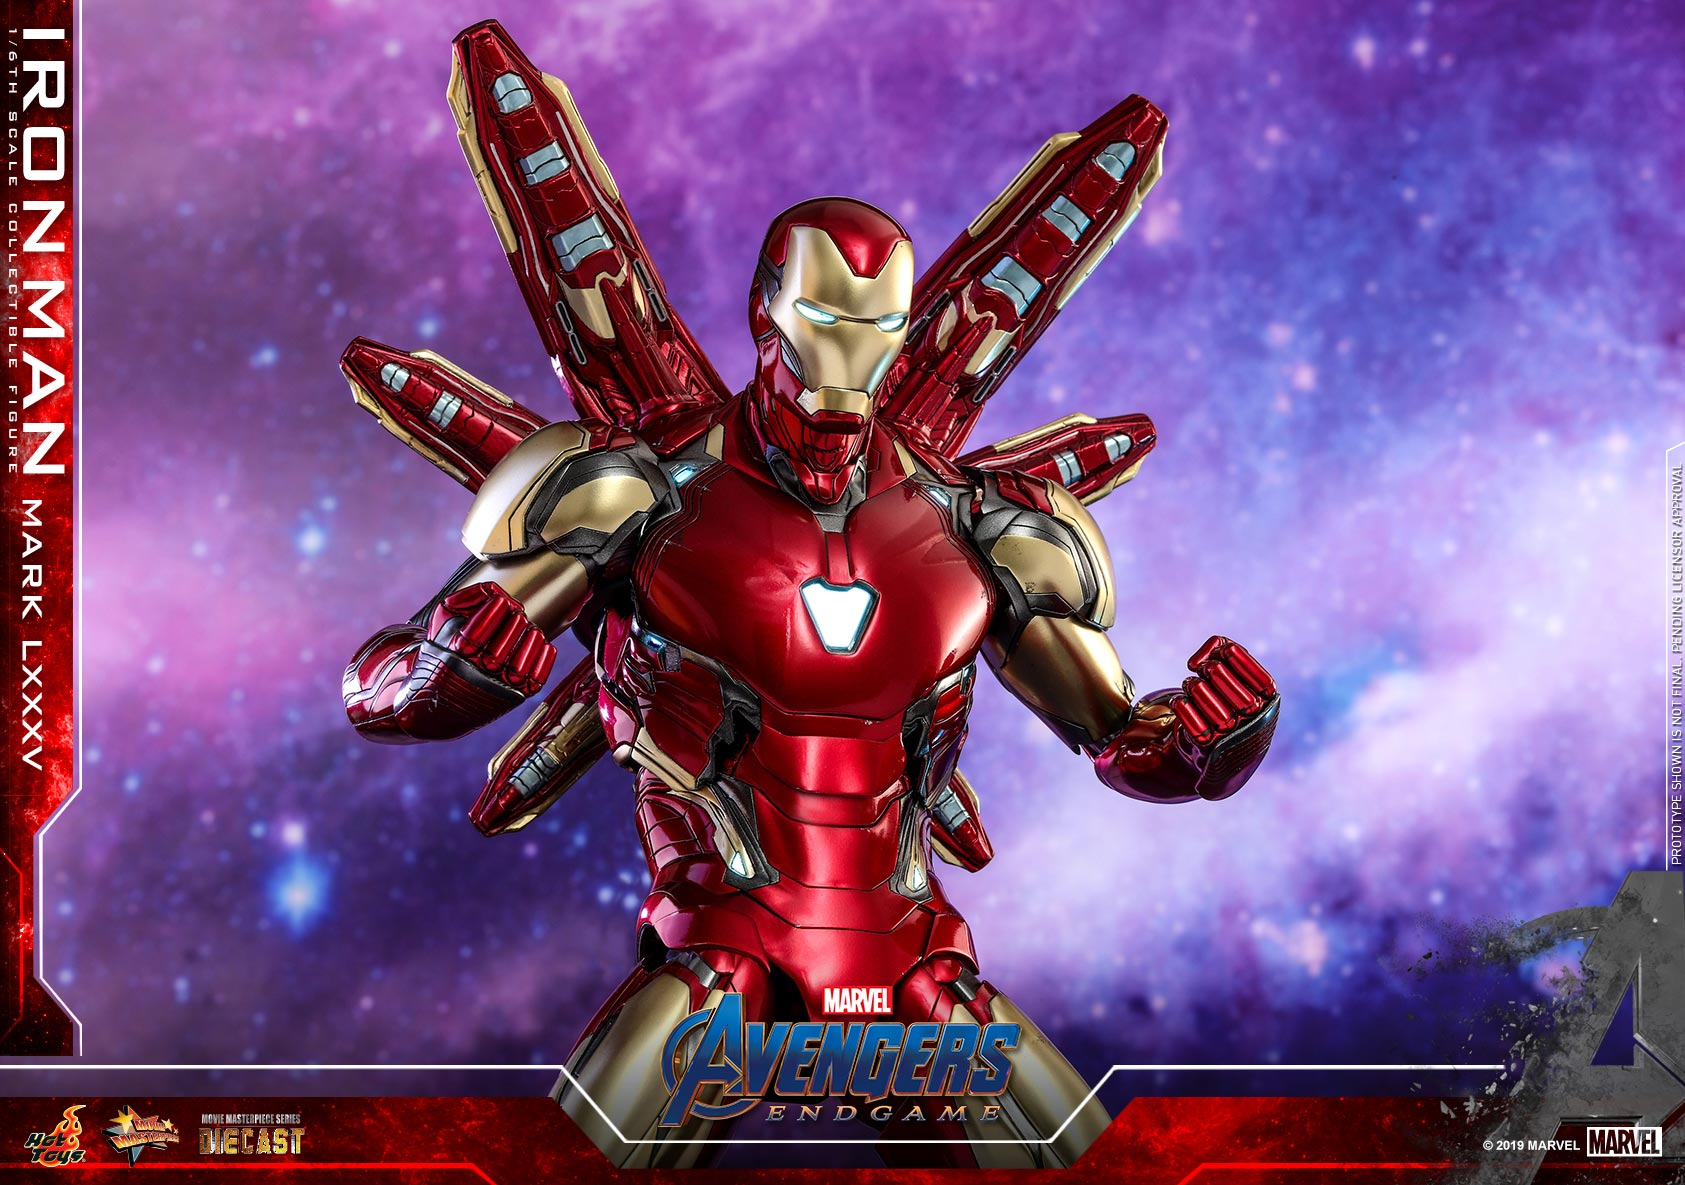 Hot-Toys---Avengers-4---Iron-Man-Mark-LXXXV-collectible-figure_PR14